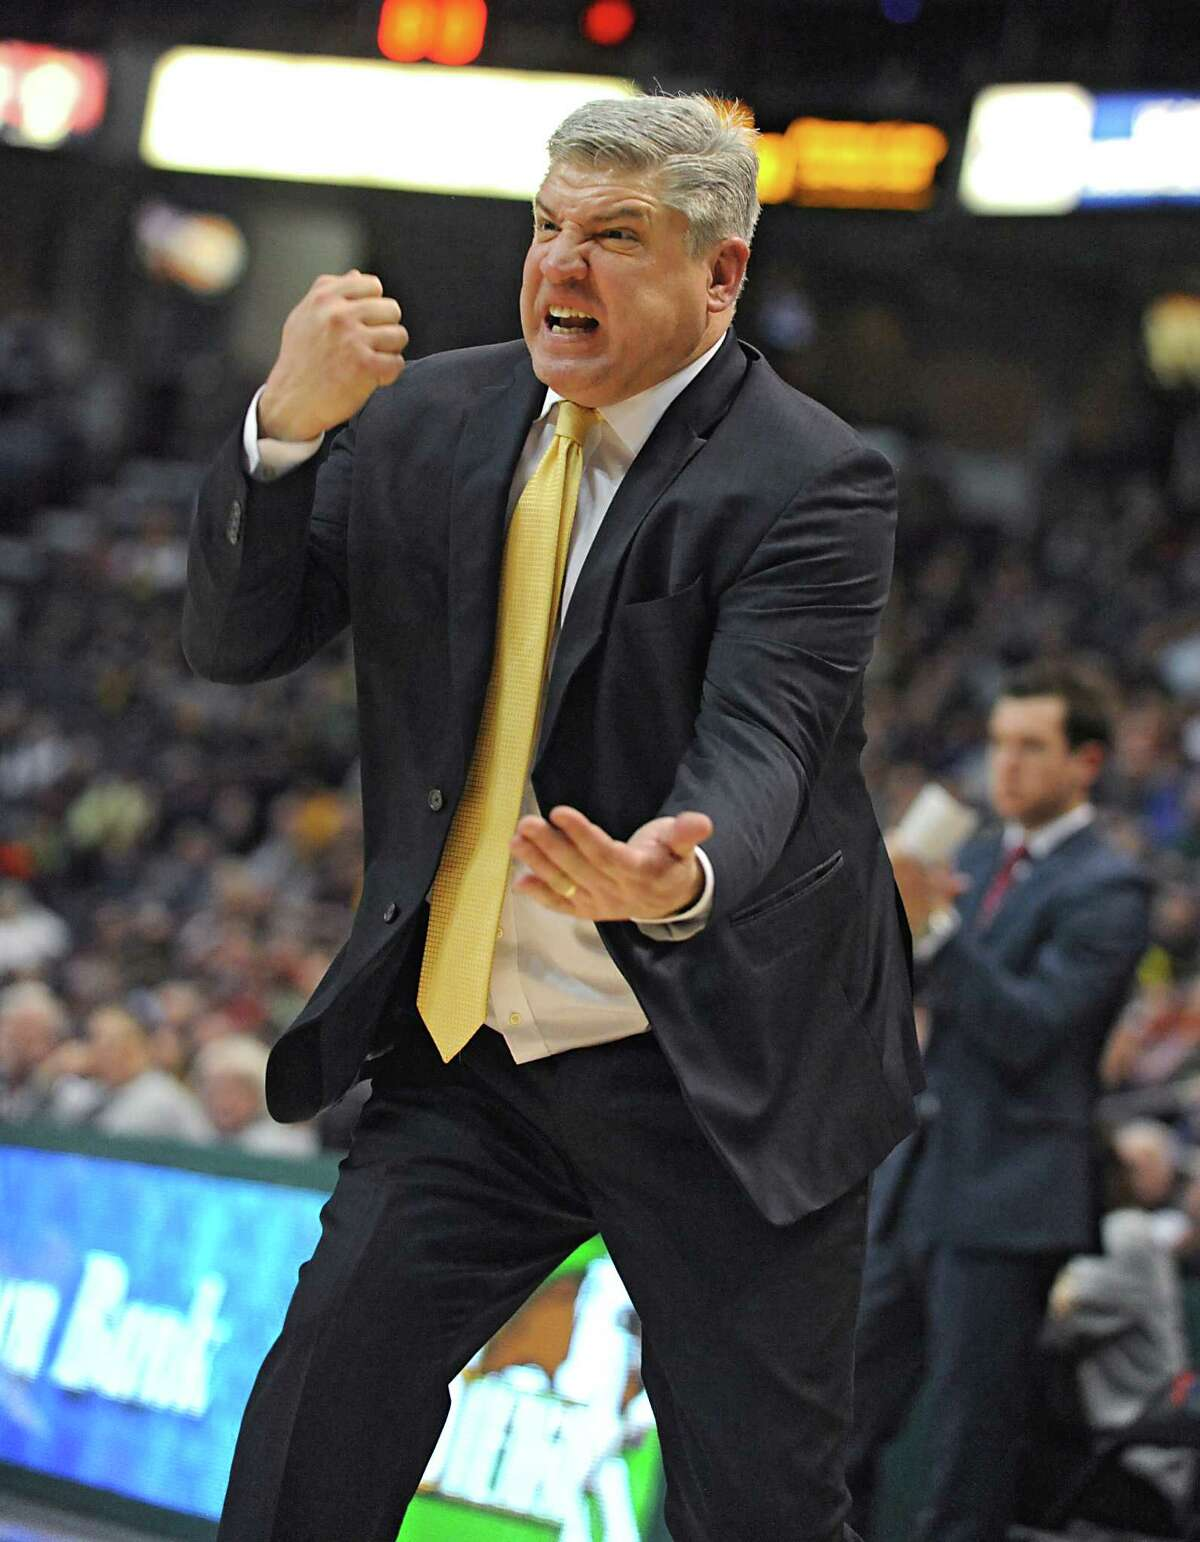 Siena head coach Jimmy Patsos is very animated on the court. Click through the slideshow to view photos of the man in action.